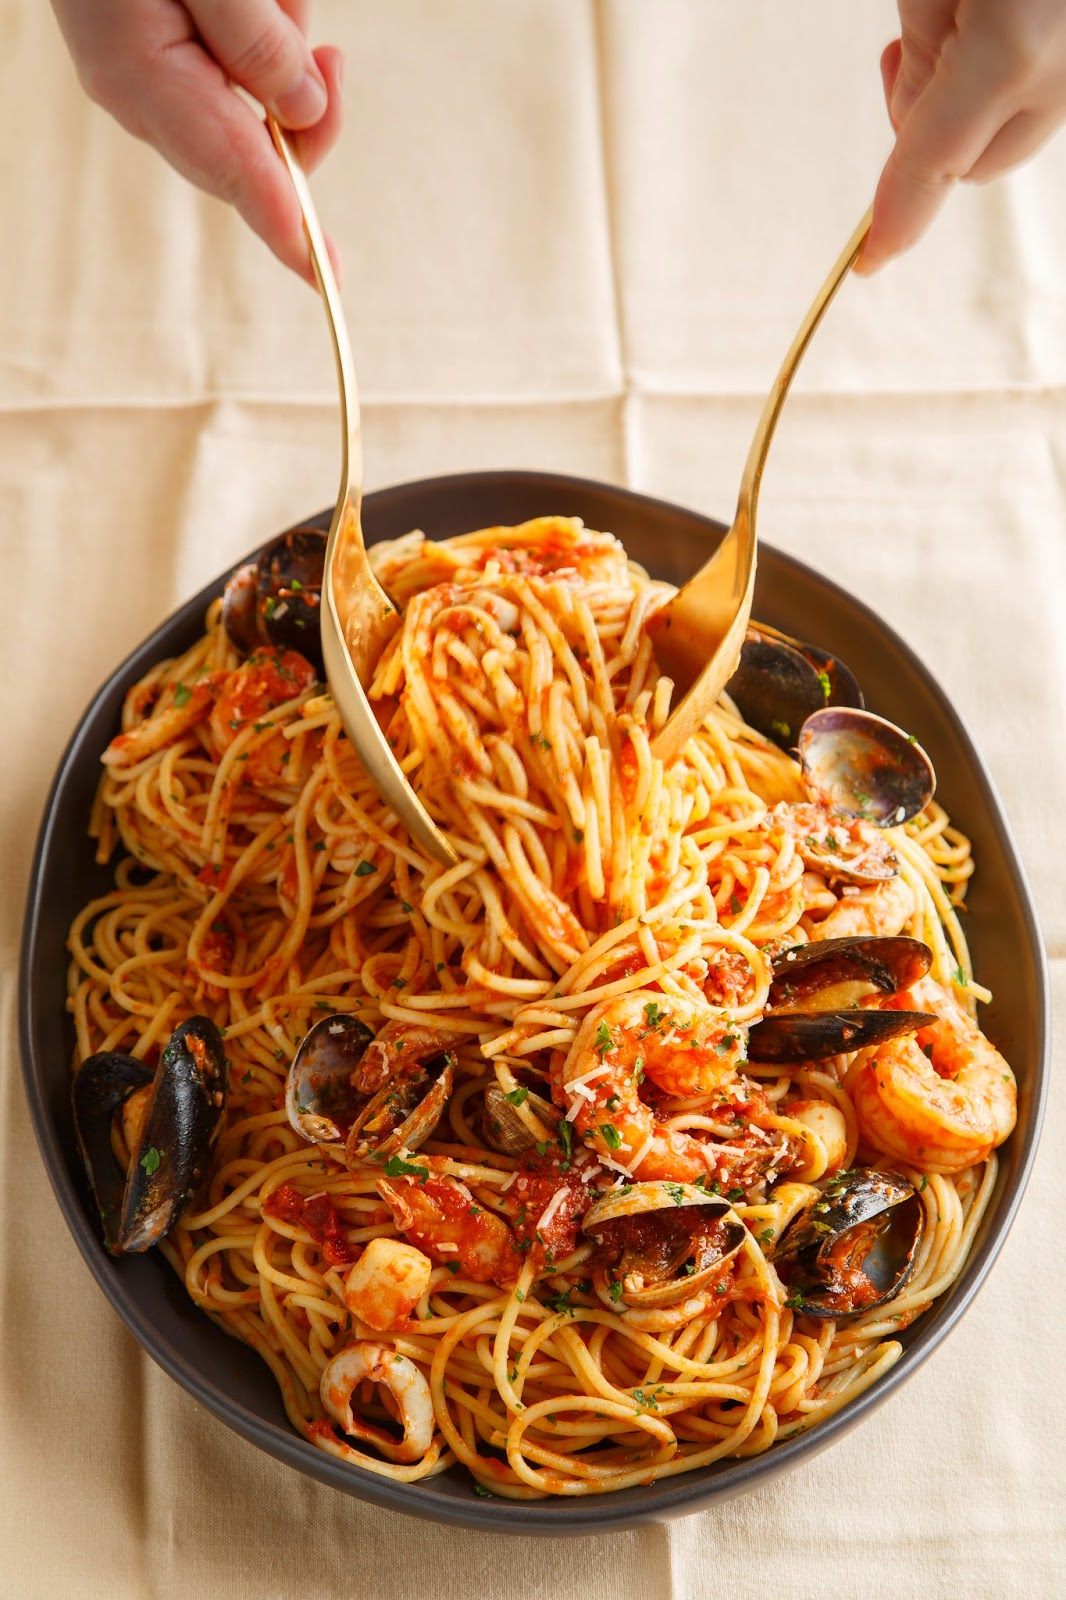 fancy-seafood-pasta-marinara-dish-by-ili-recipe